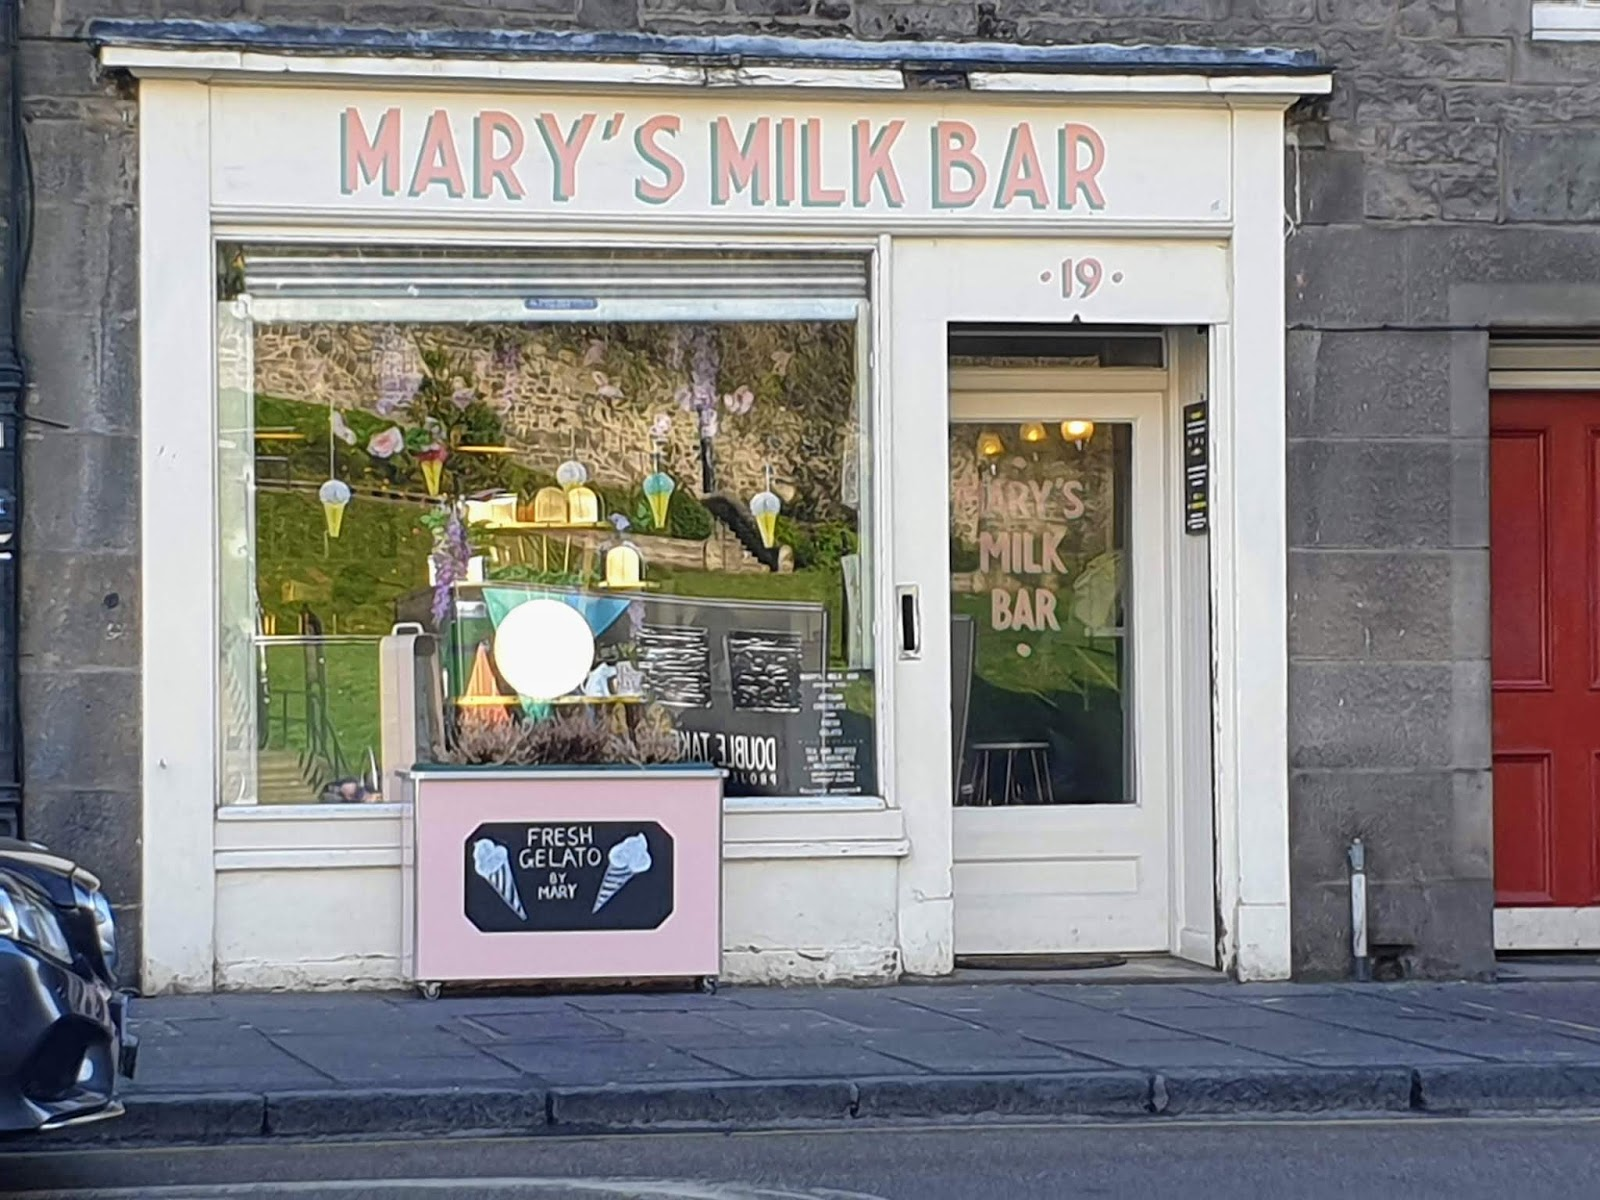 mary's milk bar edinburgh